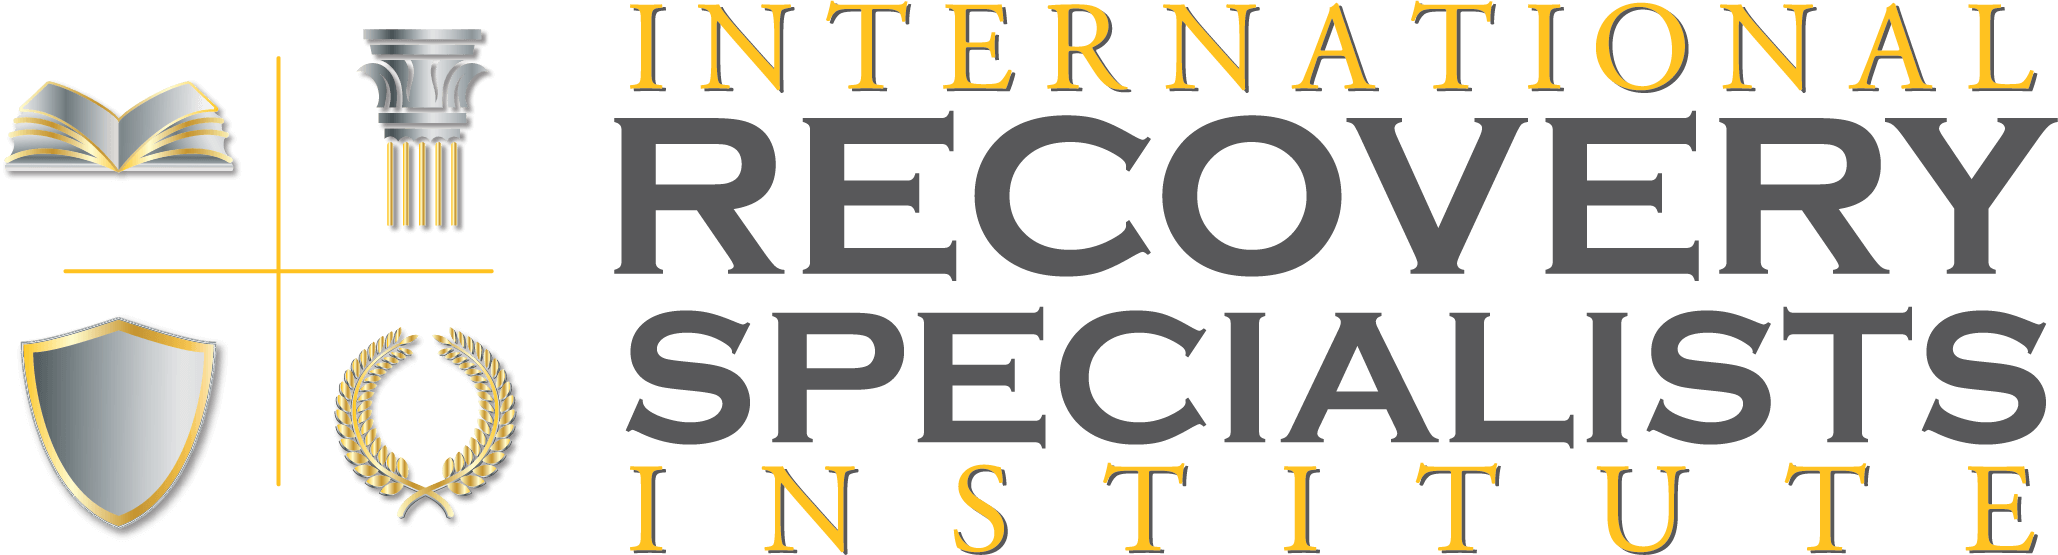 International Recovery Specialists Institute logo